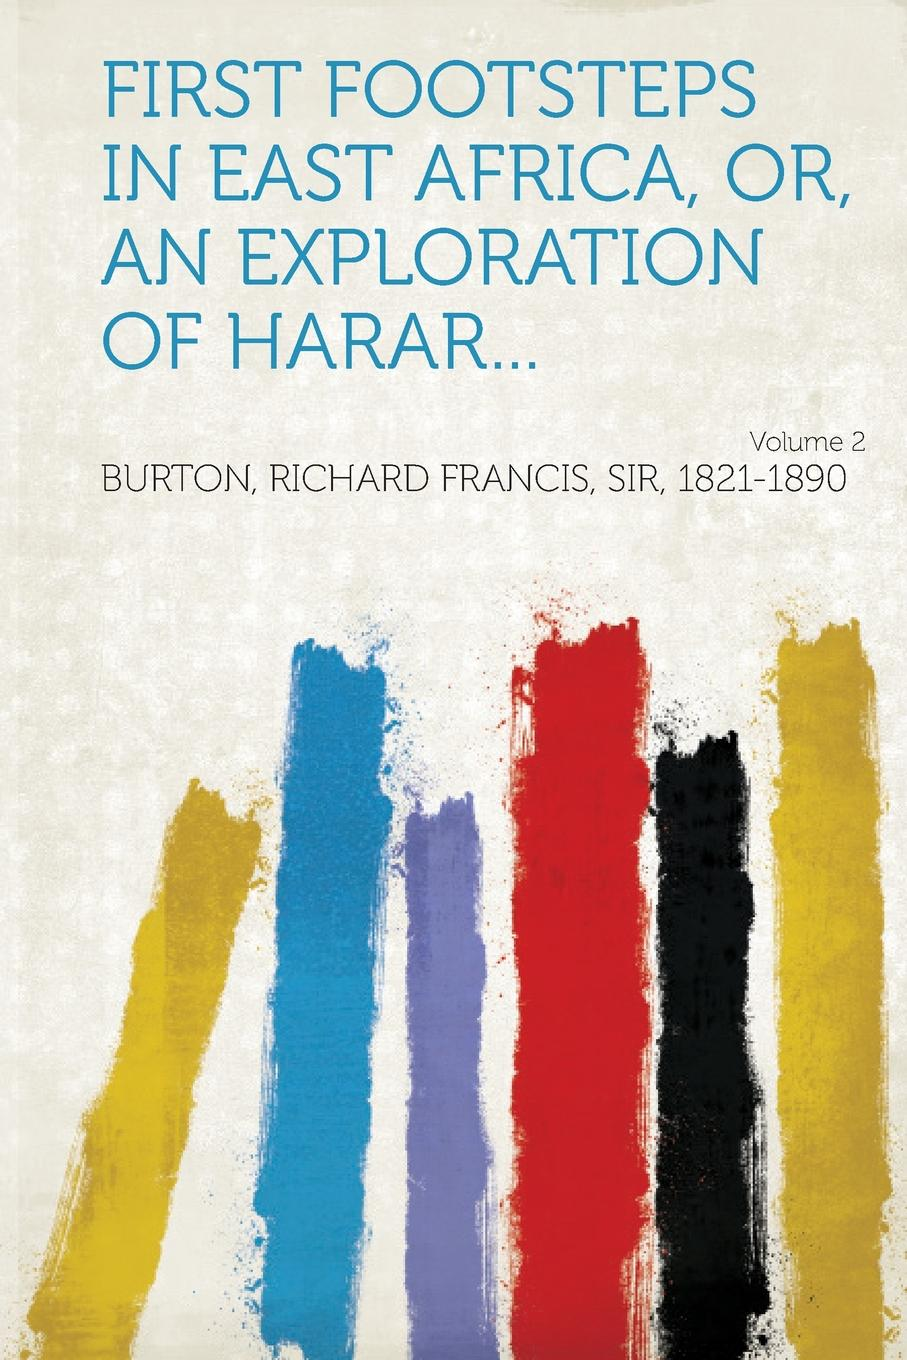 First Footsteps in East Africa, Or, an Exploration of Harar... Volume 2